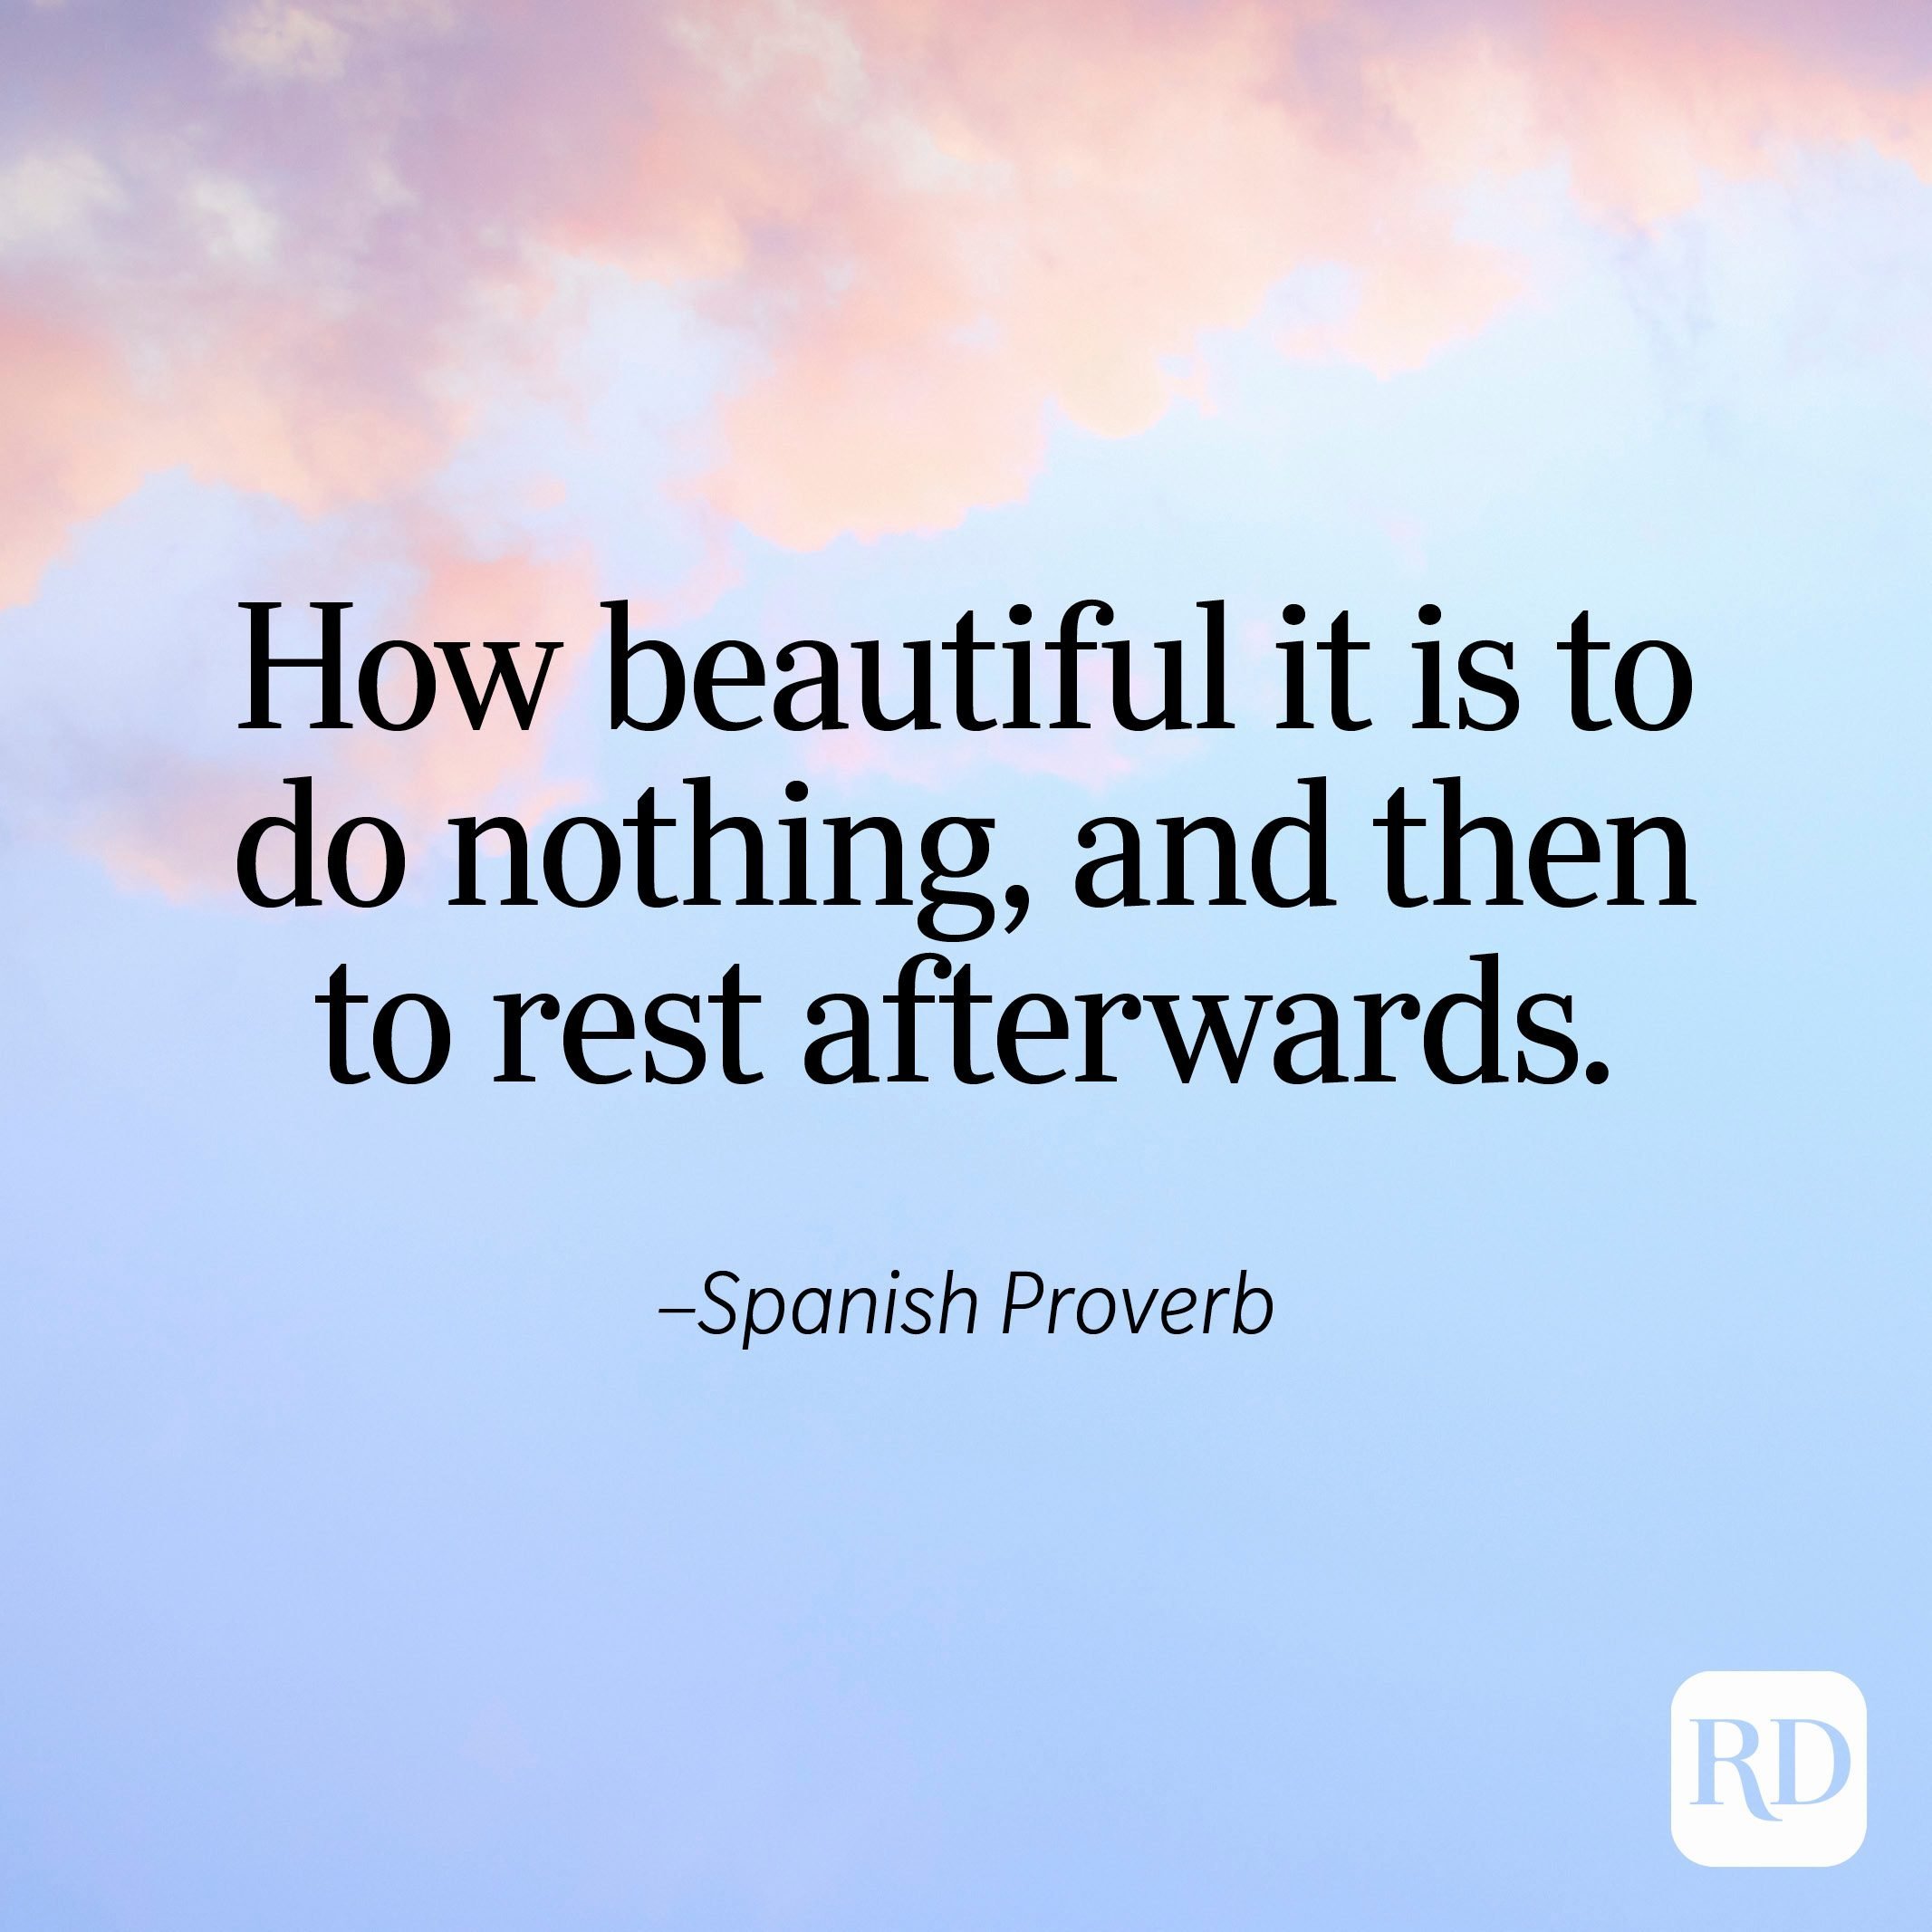 """""""How beautiful it is to do nothing, and then to rest afterwards."""" —Spanish Proverb"""